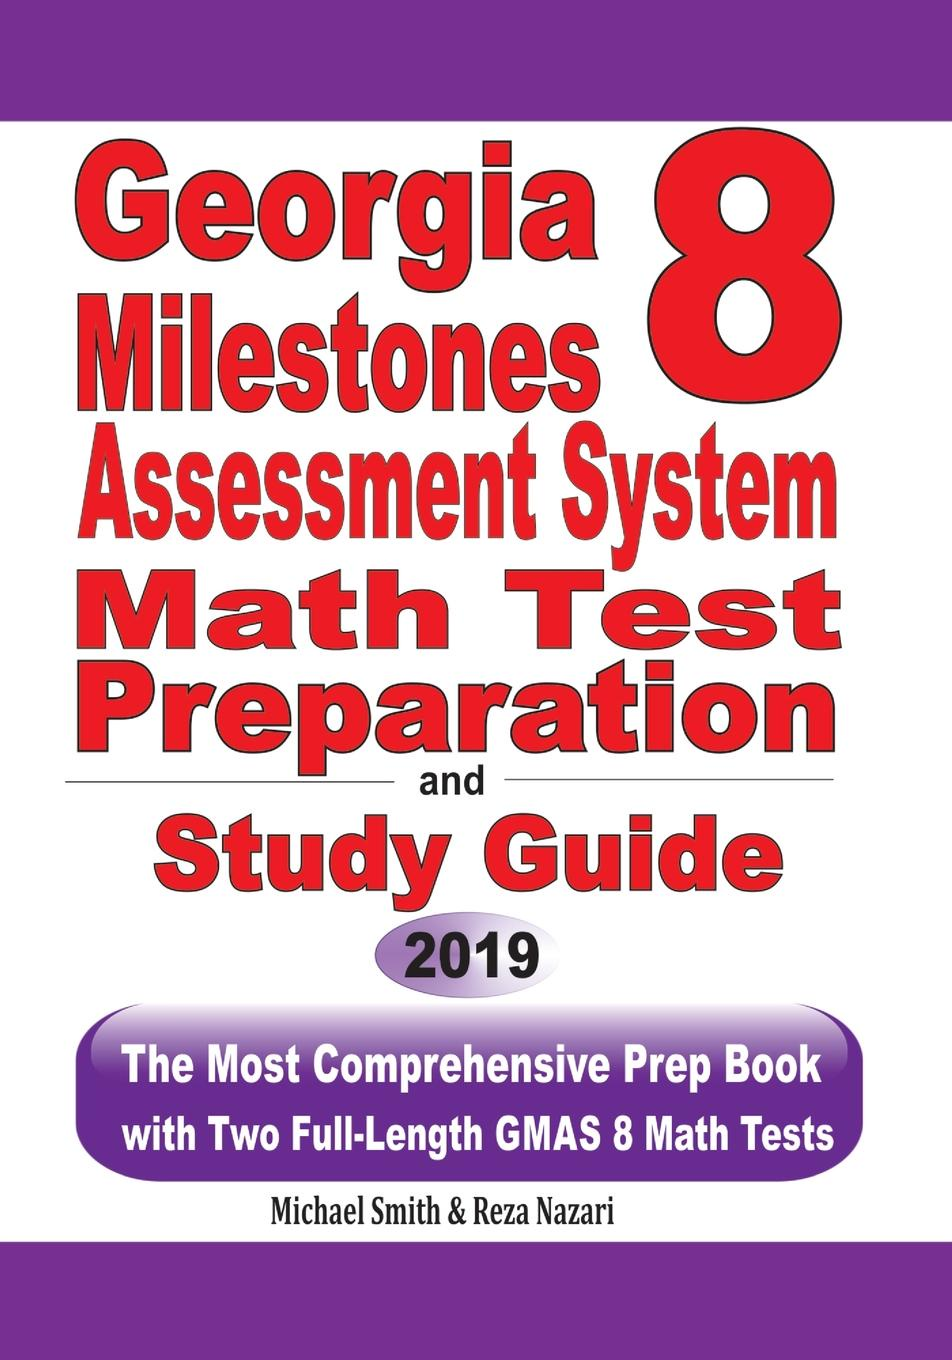 Michael Smith, Reza Nazari Georgia Milestones Assessment System 8 Math Test Preparation and Study Guide. The Most Comprehensive Prep Book with Two Full-Length GMAS Math Tests